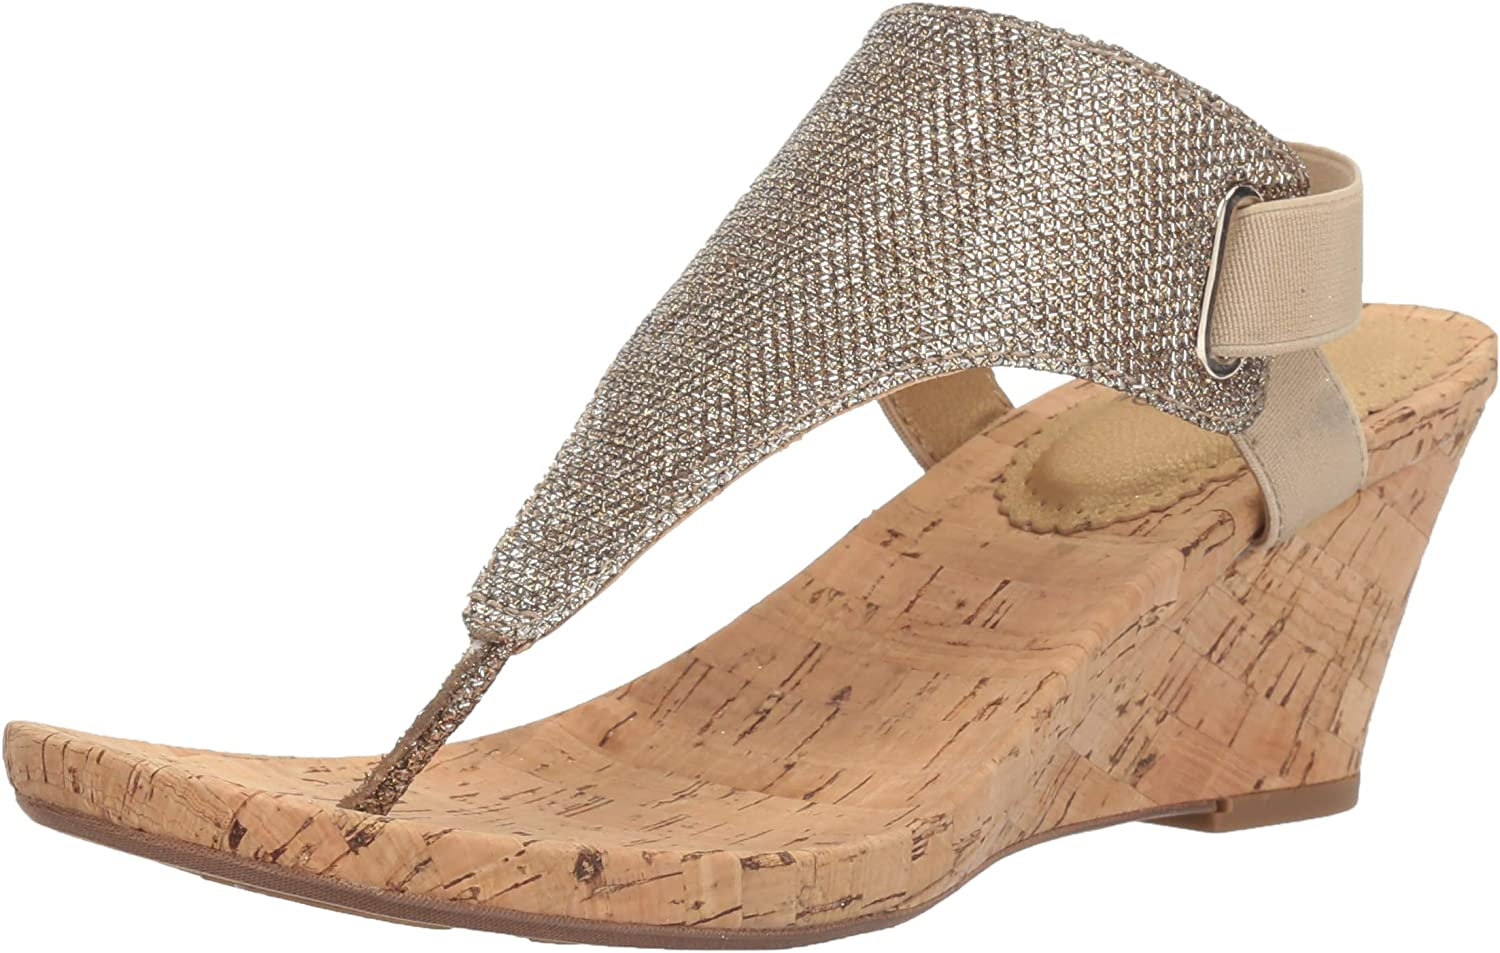 WHITE MOUNTAIN Popular brand in the world Manufacturer regenerated product Women's All Sandal Good Wedge